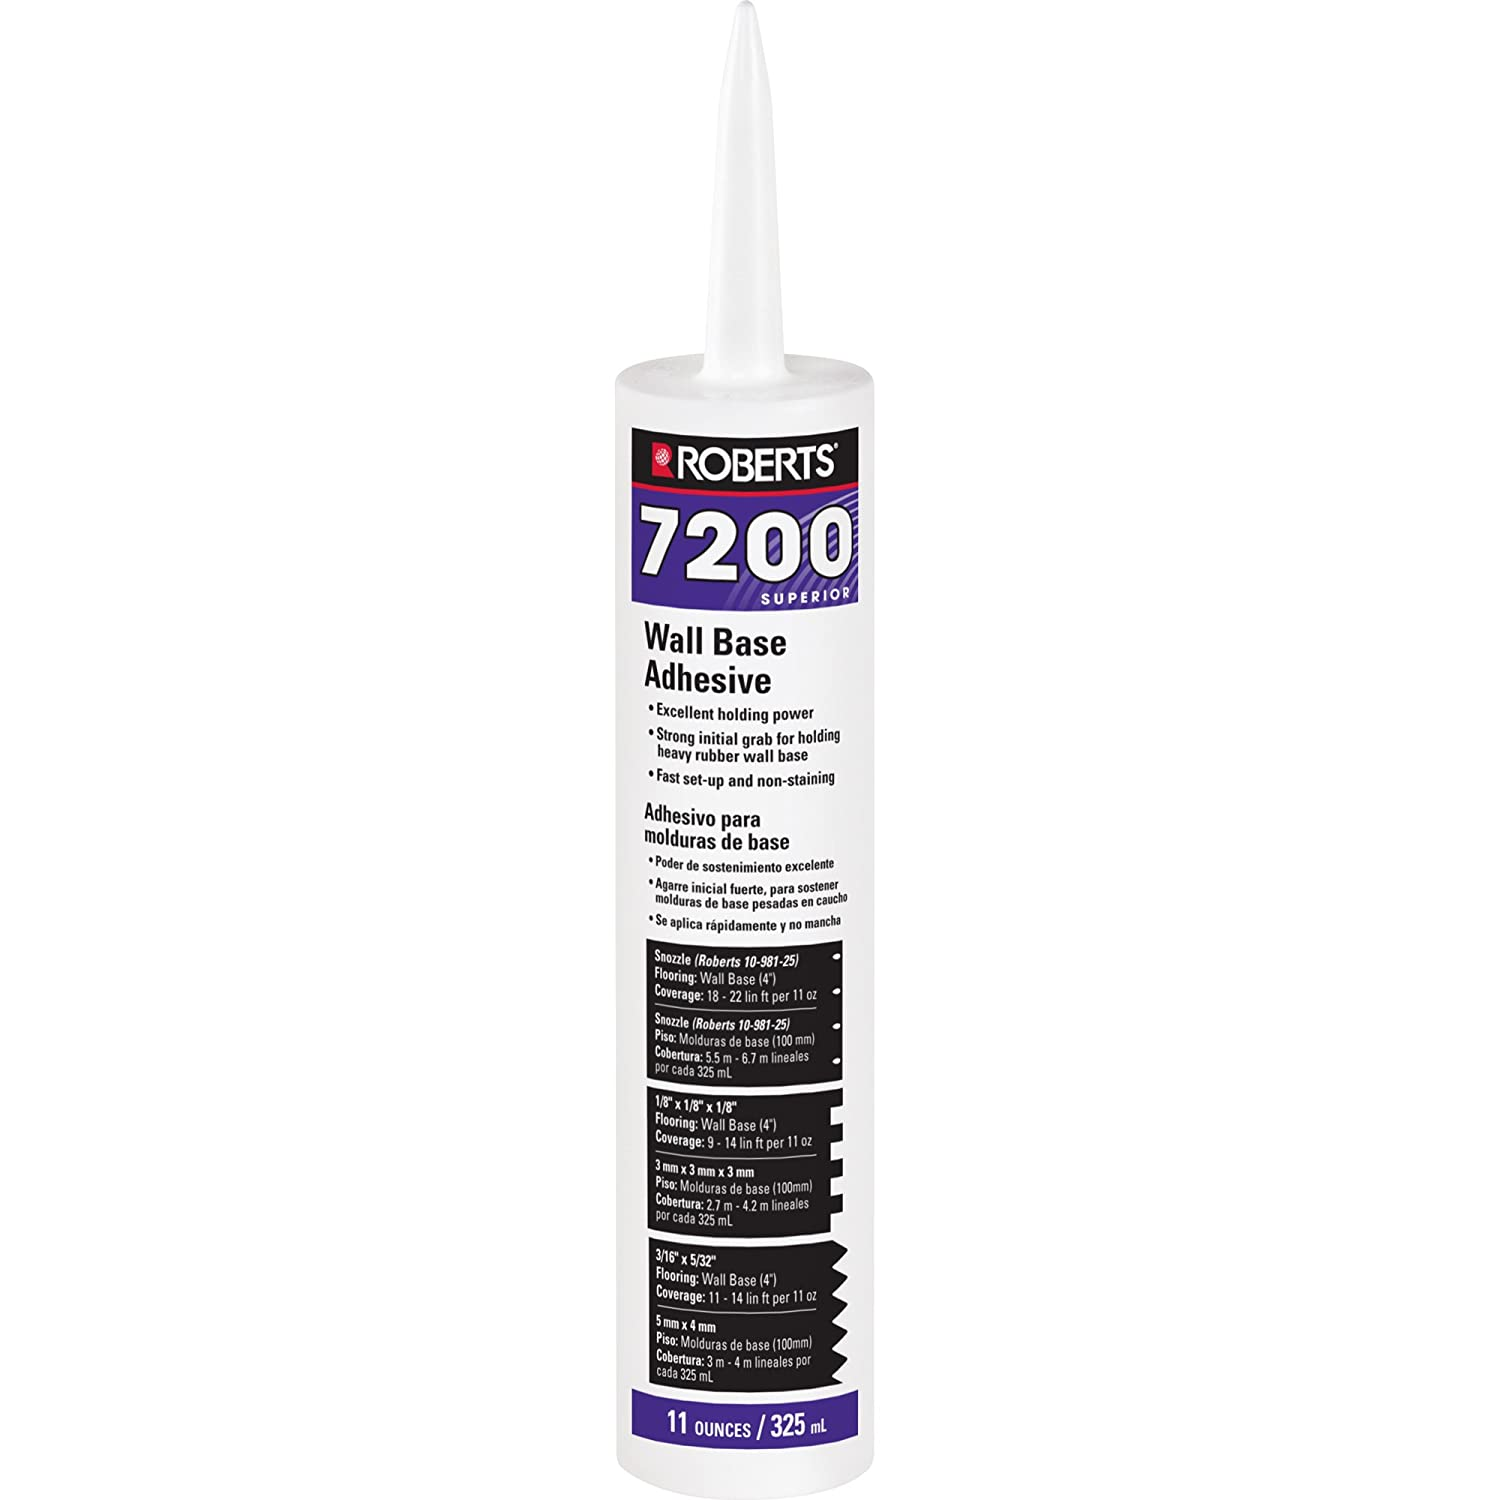 Amazon.com: Roberts 7200-11C Wall & Cove Adhering Vinyl, Rubber & Carpet Wall and Cove Base Adhesive 11oz: Home Improvement